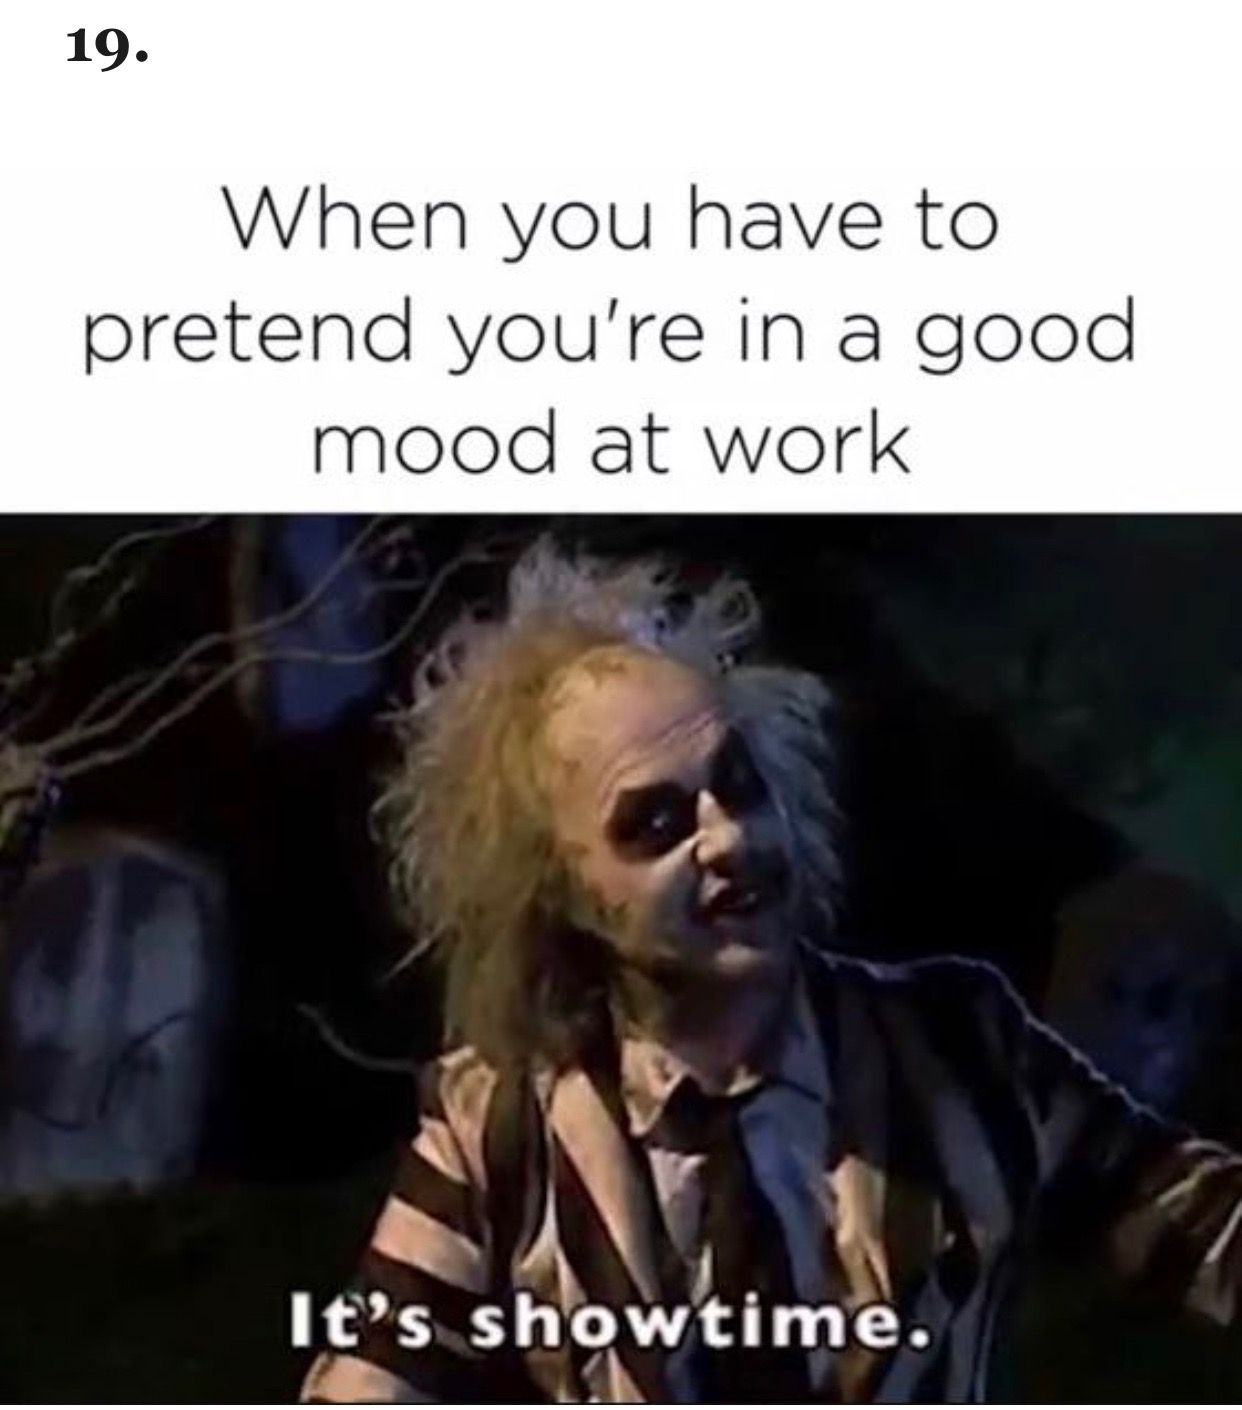 When Training At My First Job My Coworker Literally Said This And It Really Does Help Mask Bad Moods Workplace Memes Work Humor Work Memes